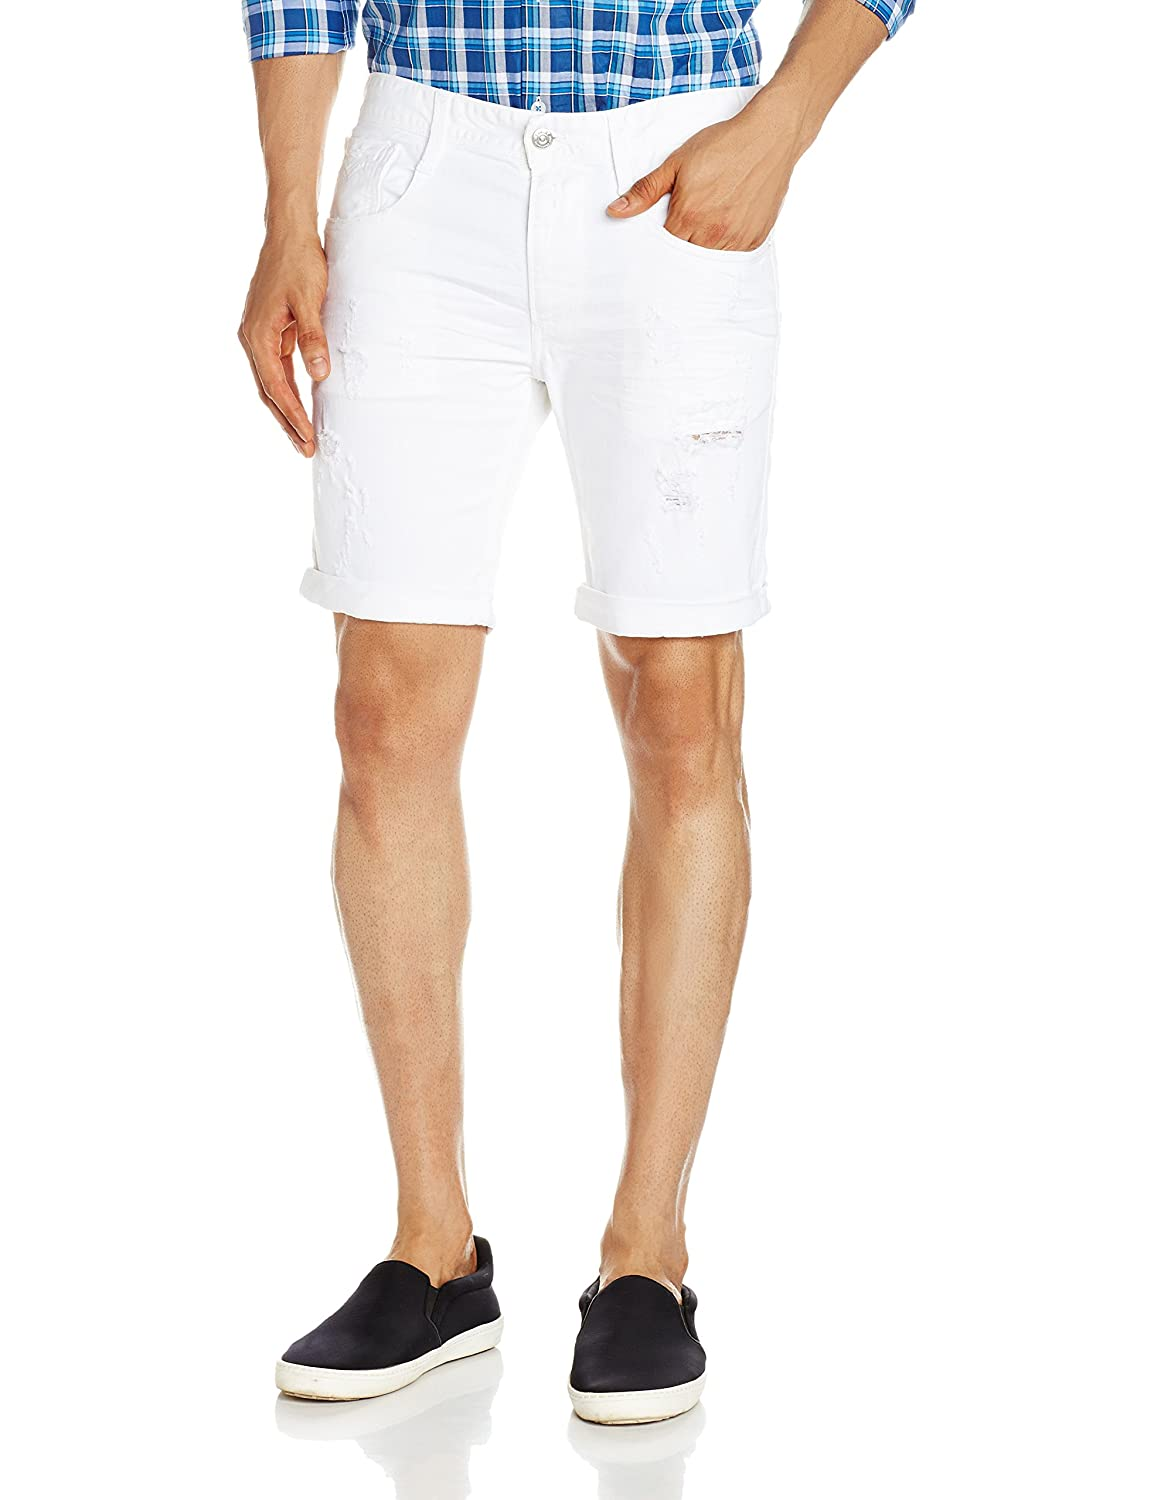 Replay Herren Shorts Shorts Anbass